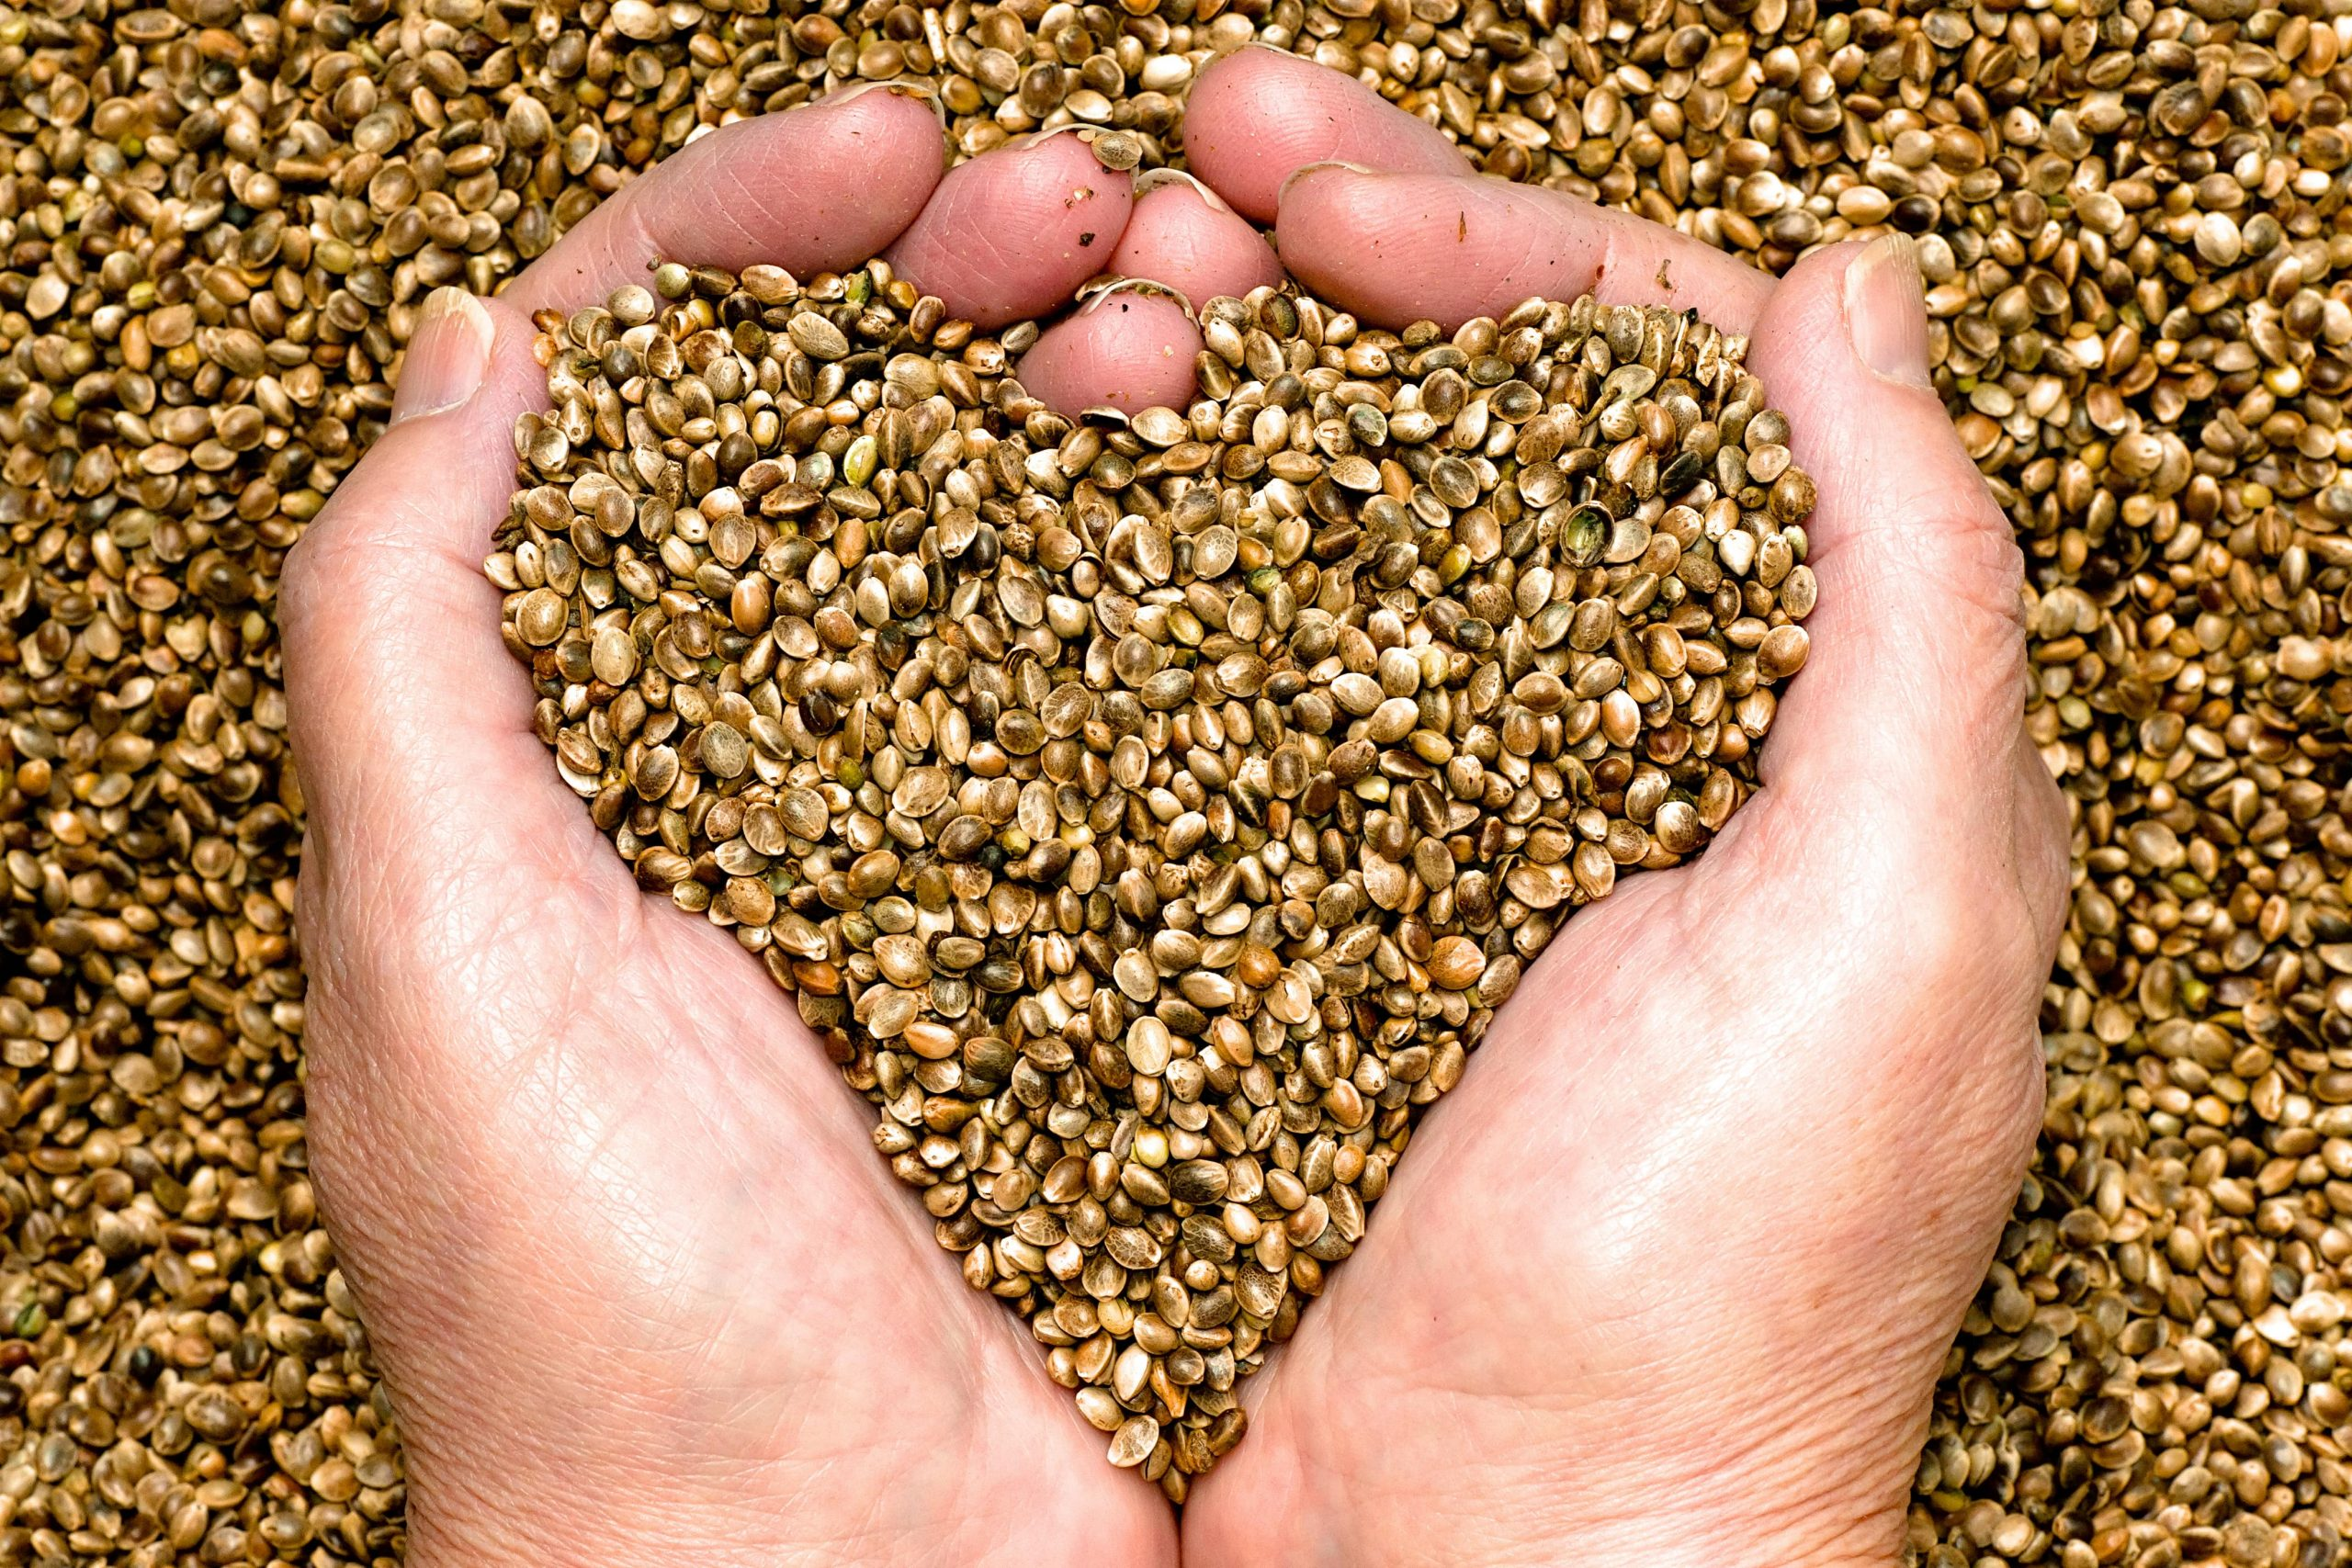 hemp-seeds-person-hands-min